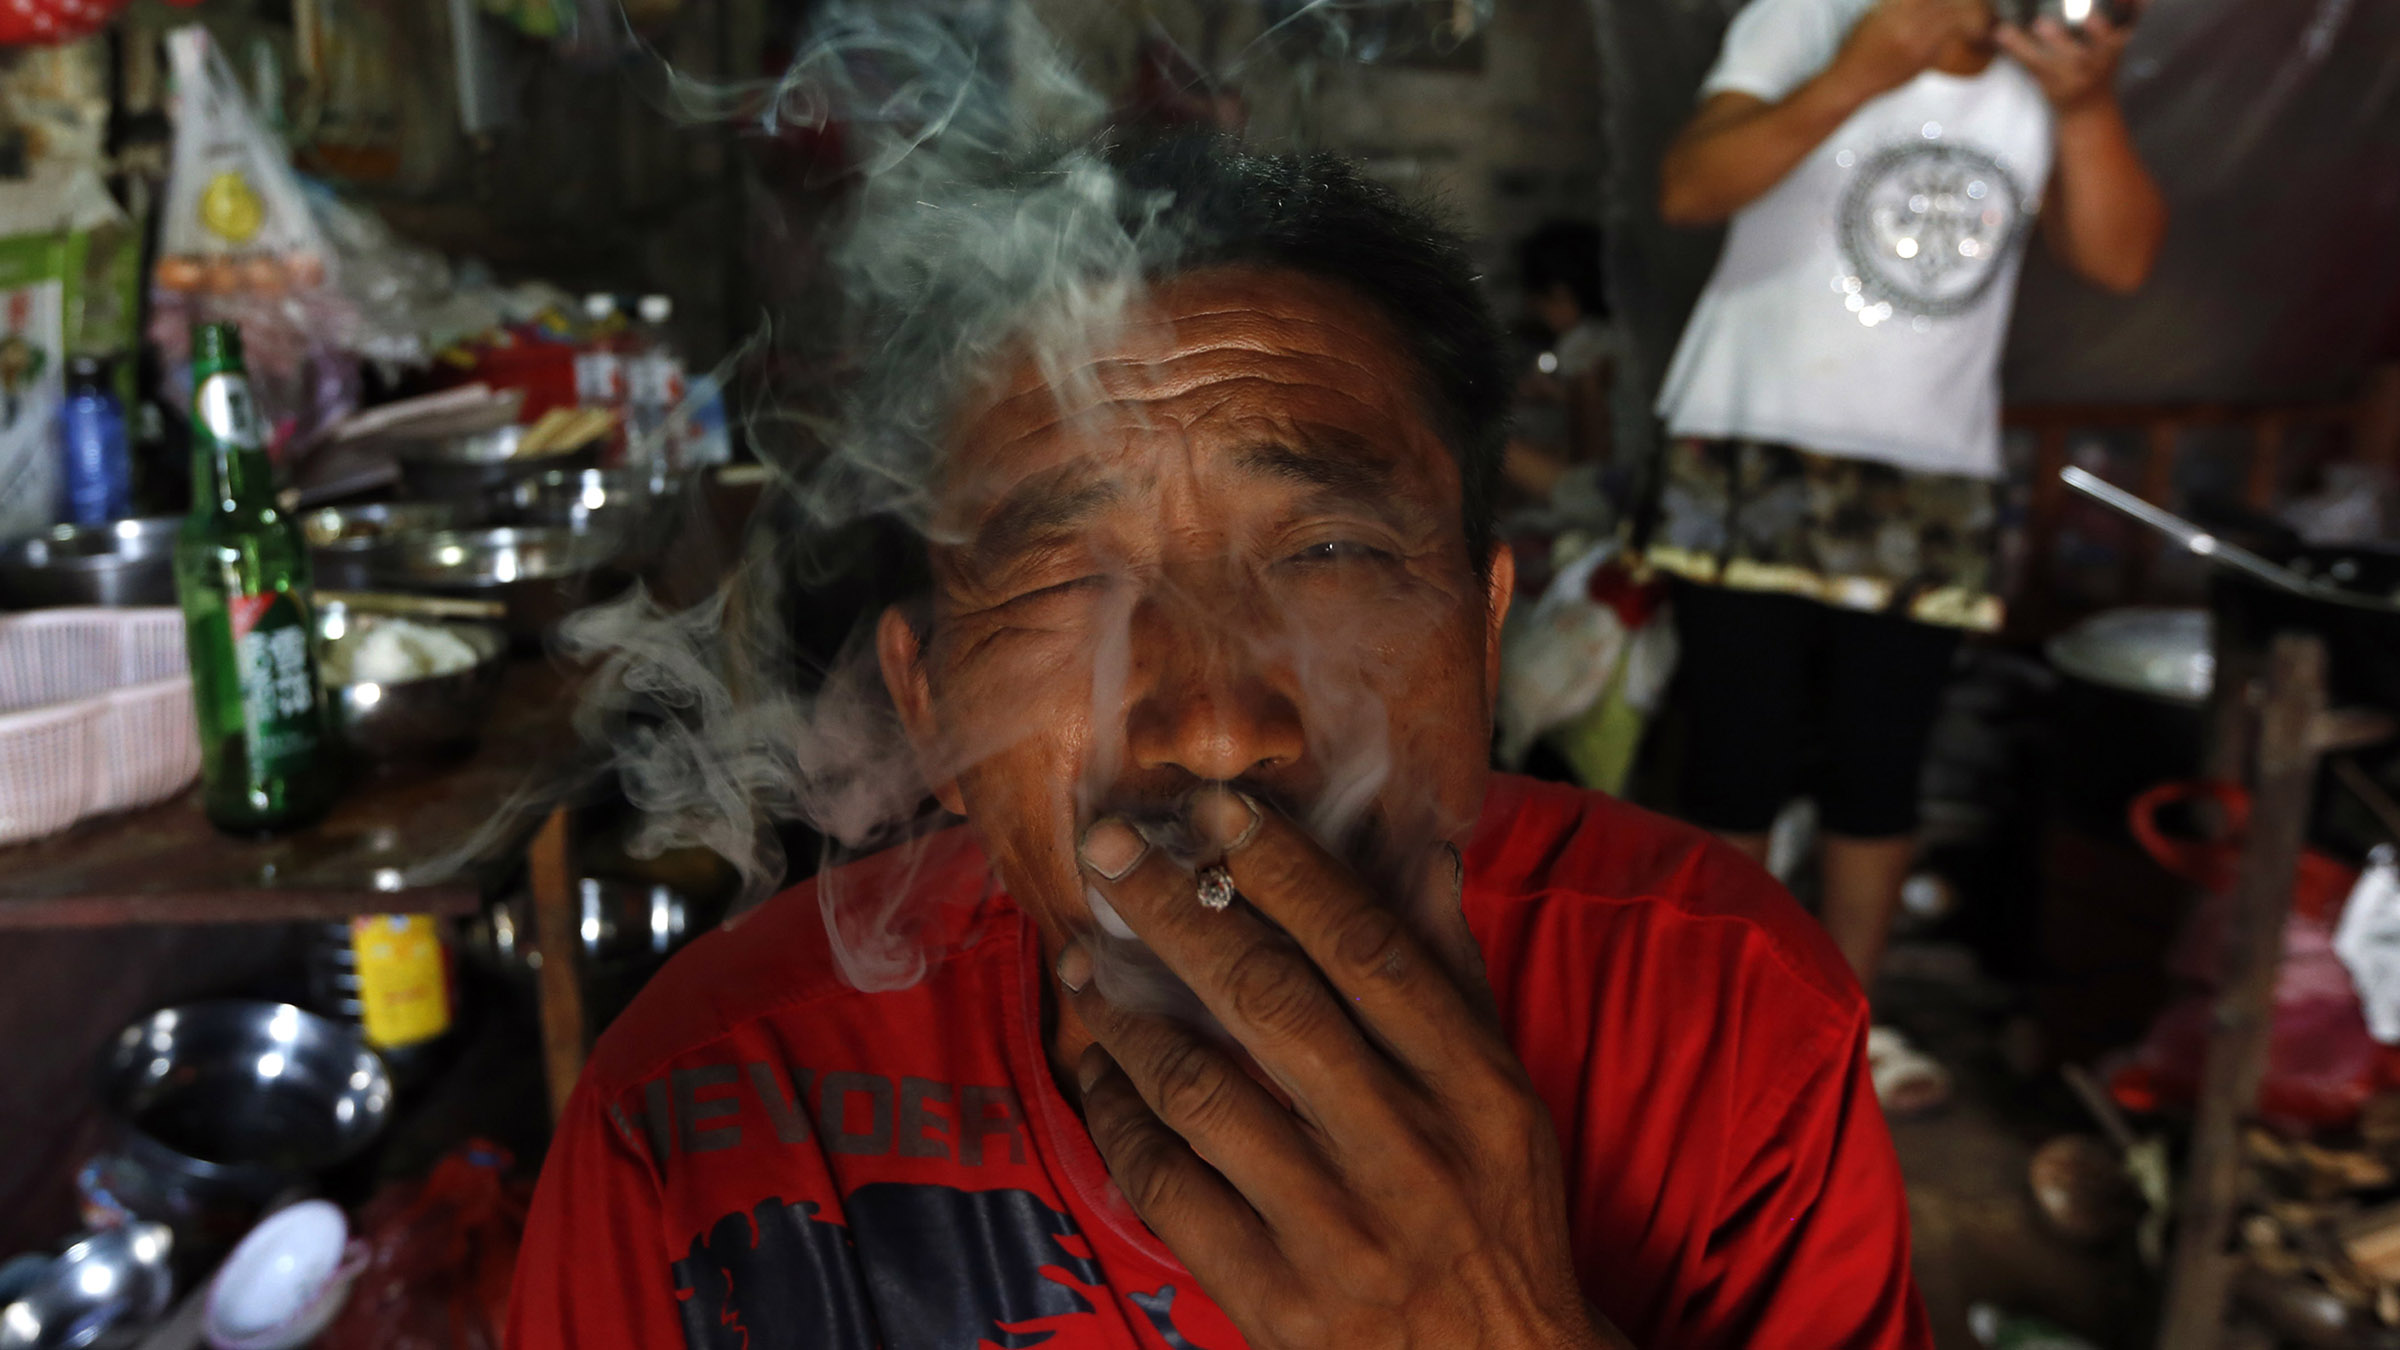 Yang Hongnian, 47, smokes after lunch at home in Jinhua, Zhejiang province, August 7, 2014. Migrant worker Yang, his wife Le Huimin, and their seven children share a 20-square-metre makeshift  house on the outskirts of Jinhua, and live on around 3000-4000 yuan ($486.8-$649) which Yang earns from working at a construction site. Except for one daughter Le had with her ex-husband, the couple have given birth to six children in 10 years. REUTERS/William Hong (CHINA - Tags: SOCIETY) CHINA OUT. NO COMMERCIAL OR EDITORIAL SALES IN CHINA - RTR41K9C